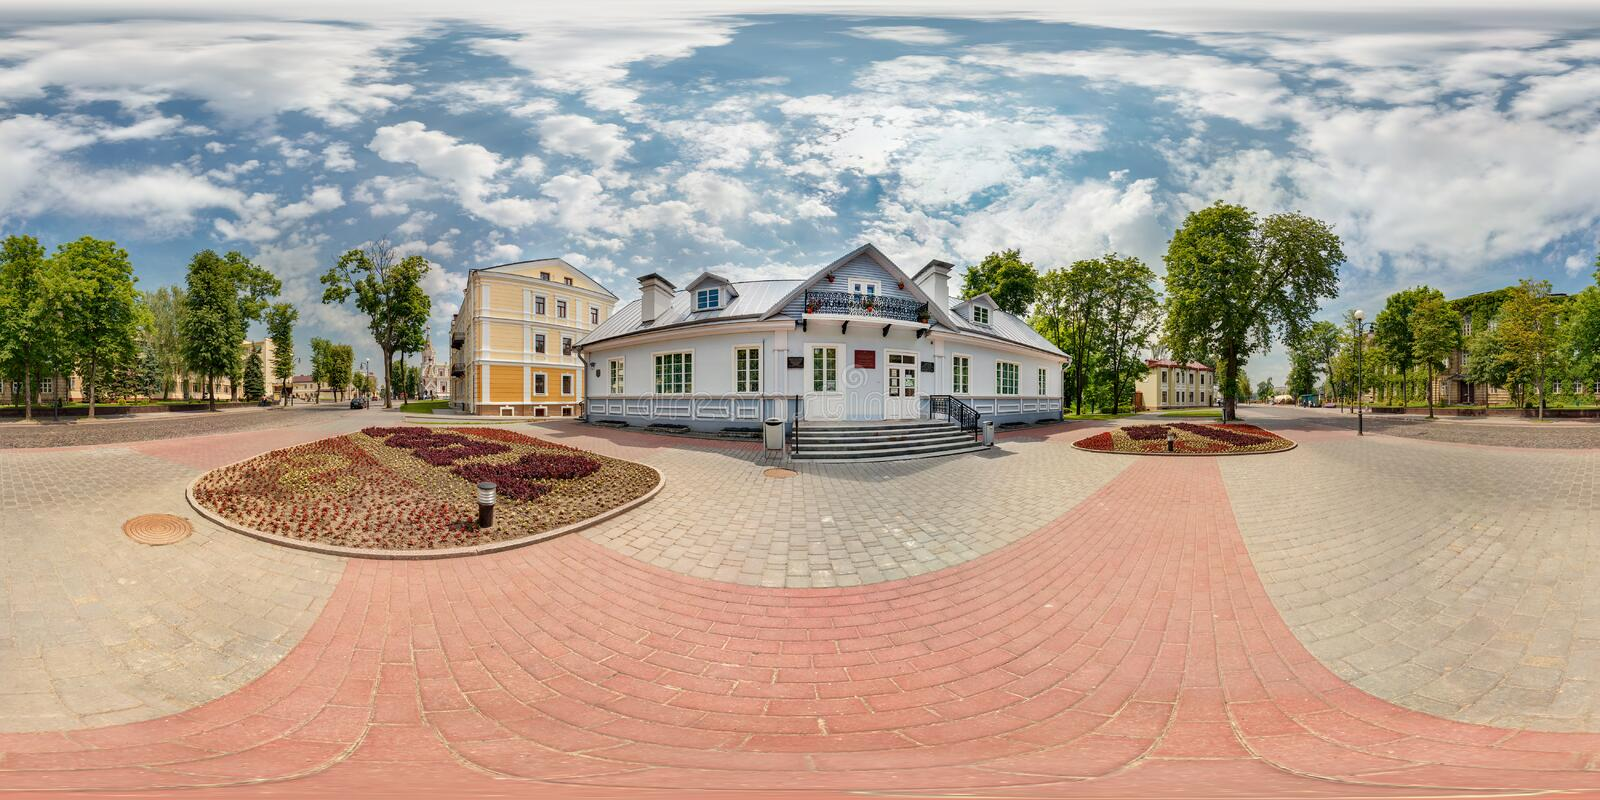 Full spherical 360 degrees seamless panorama in equirectangular equidistant projection, panorama in park of old city, VR content.  royalty free stock photos